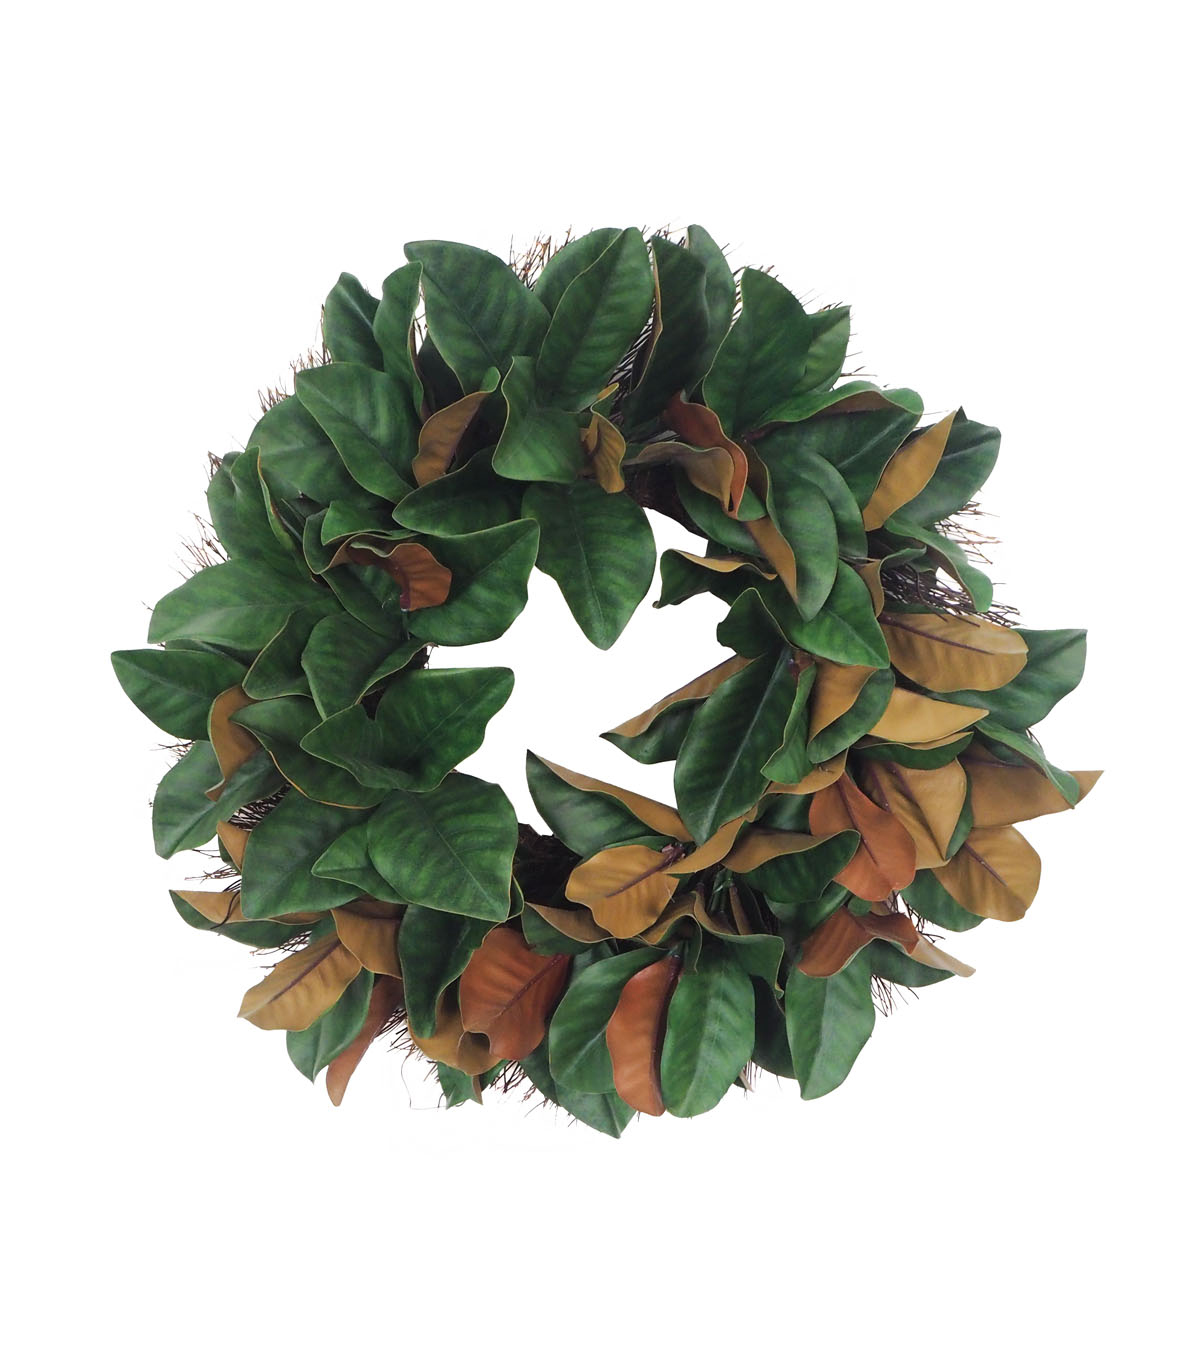 Blooming Holiday Christmas Farm Large Magnolia Leaves Wreath